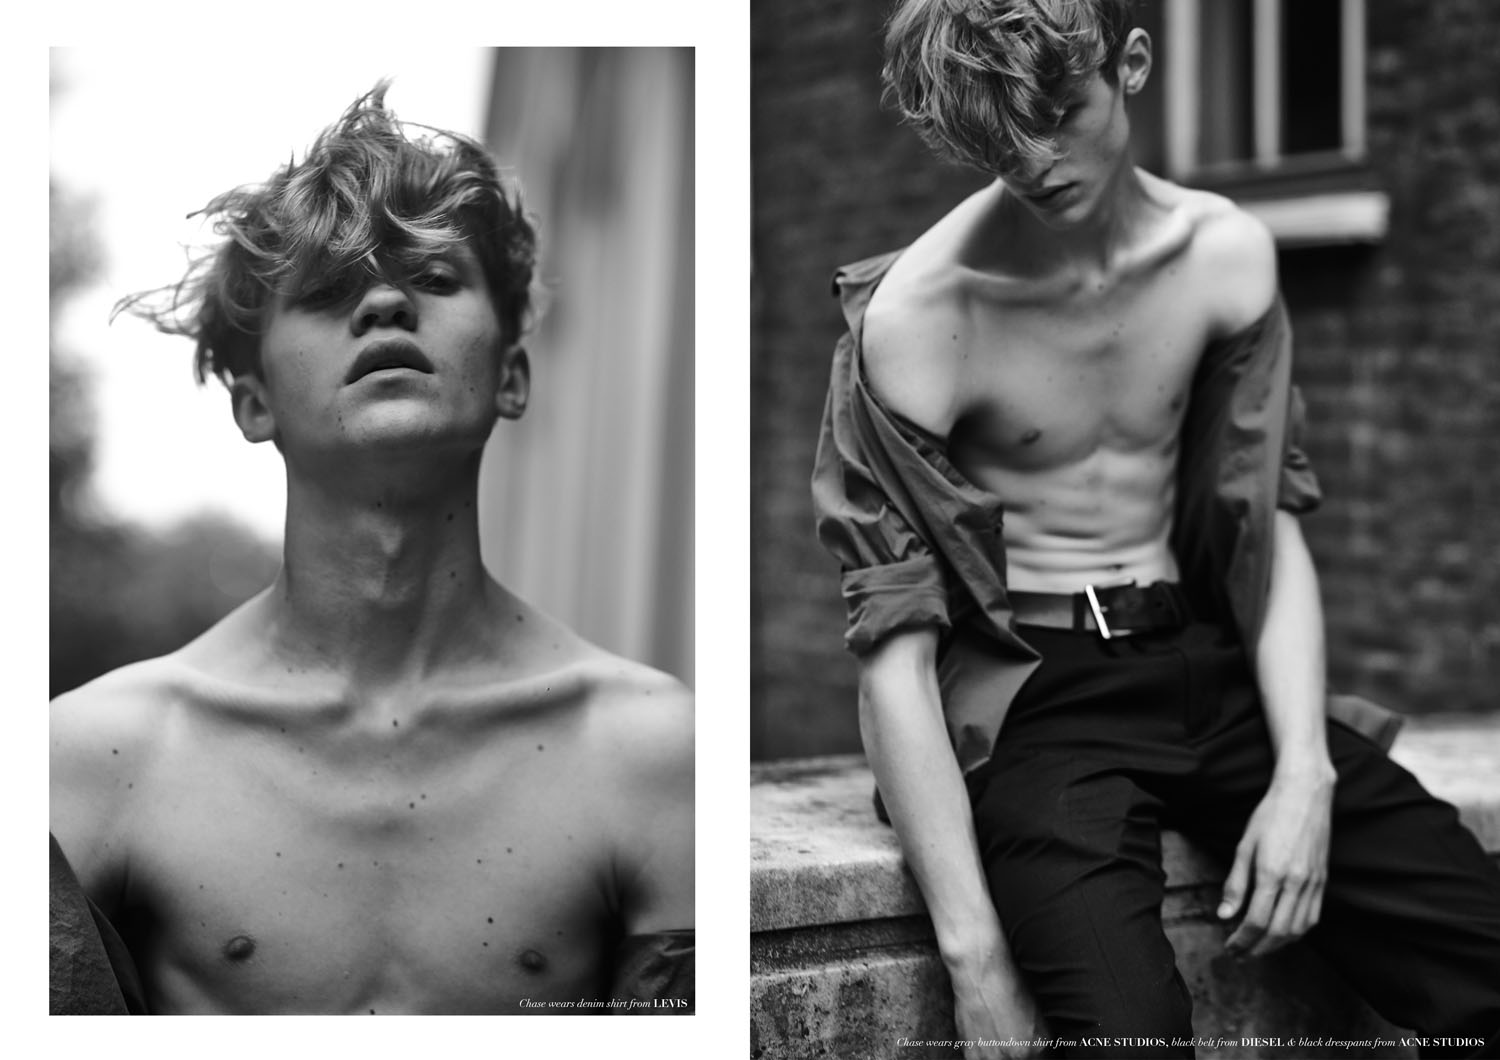 CHASING DREAMS by Danny Lim for CHASSEUR MAGAZINE